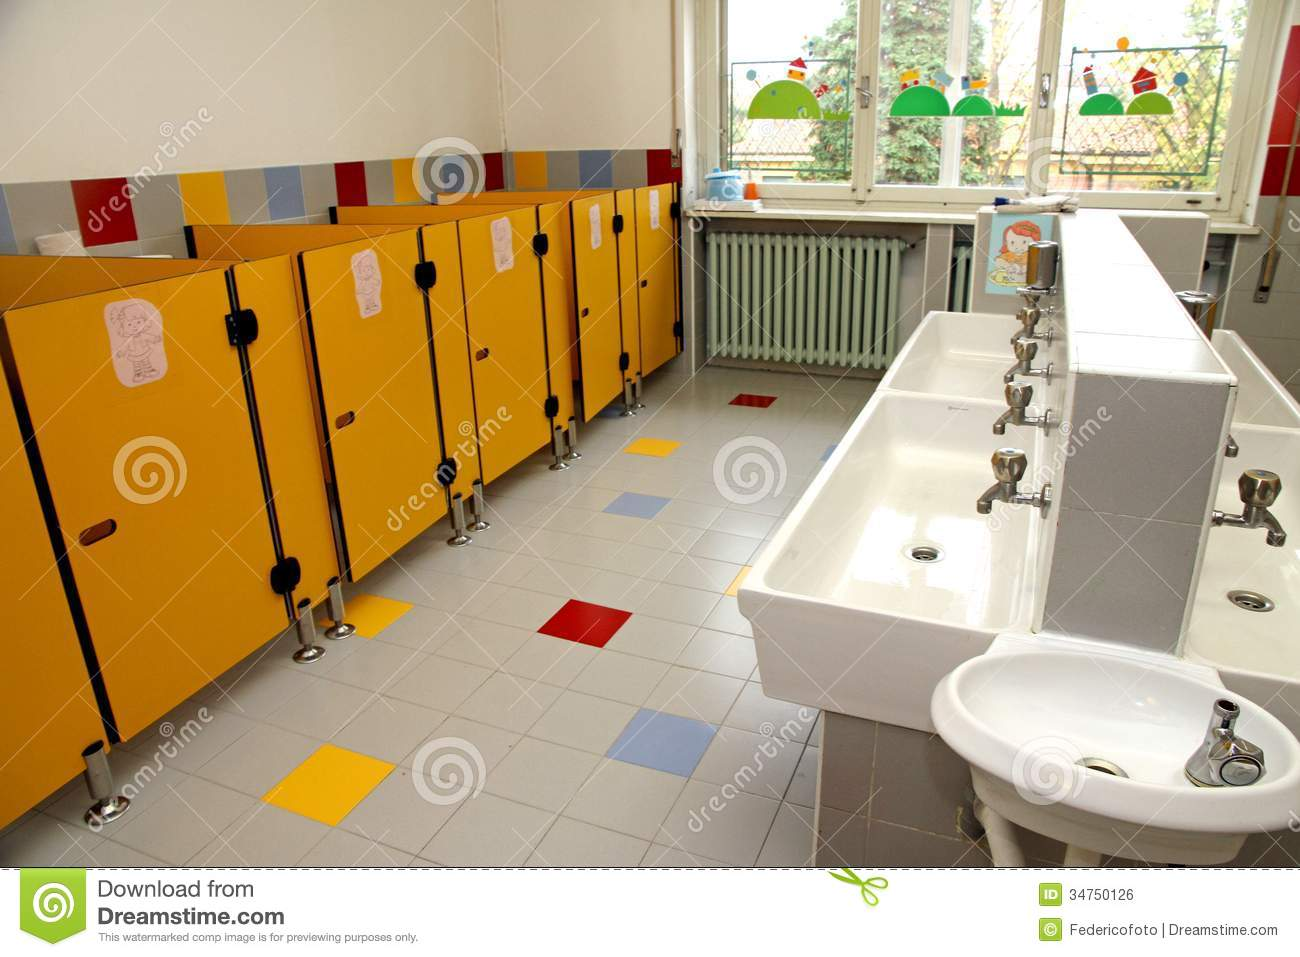 The children s bathrooms of a kindergarten